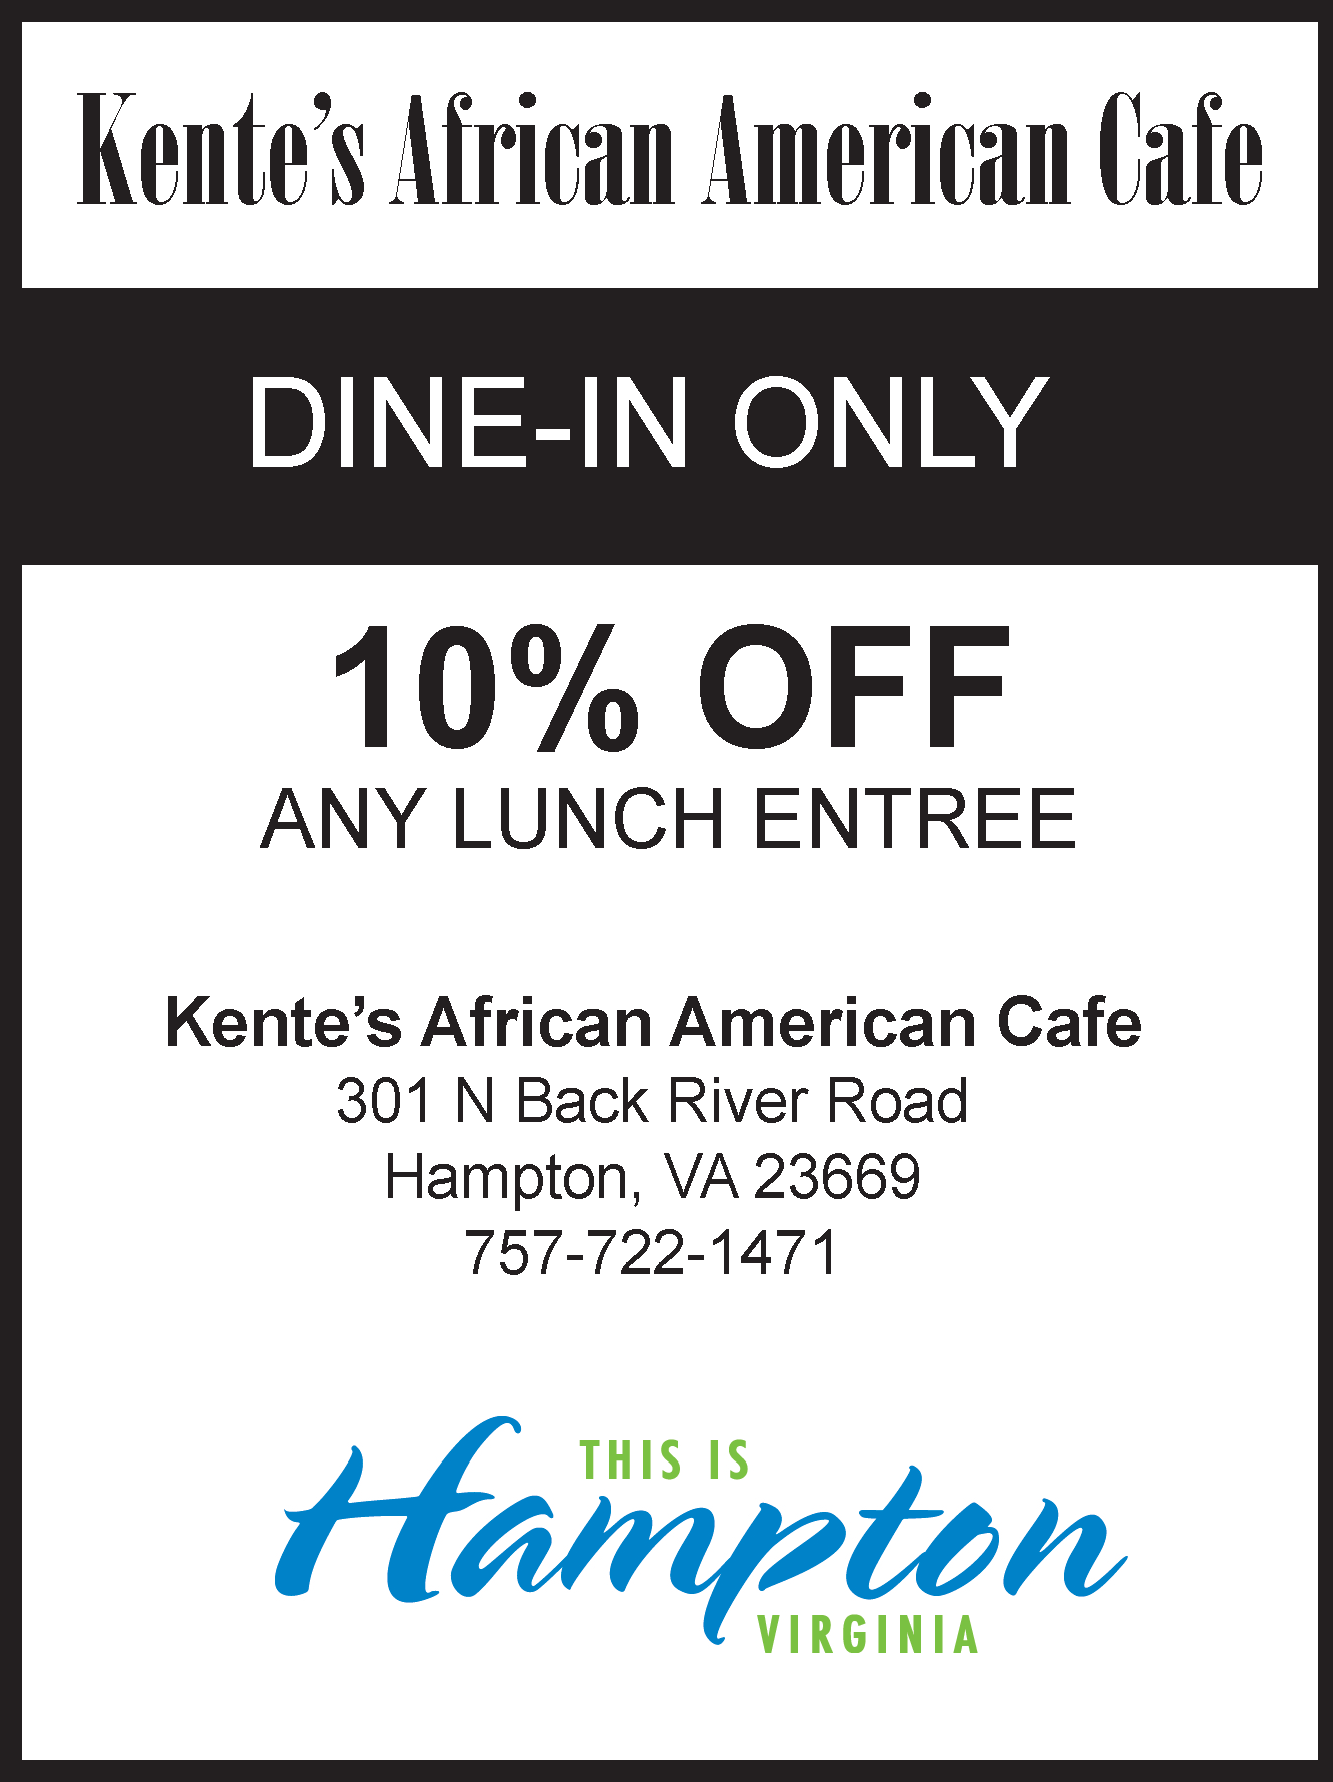 Kente's African American Cafe